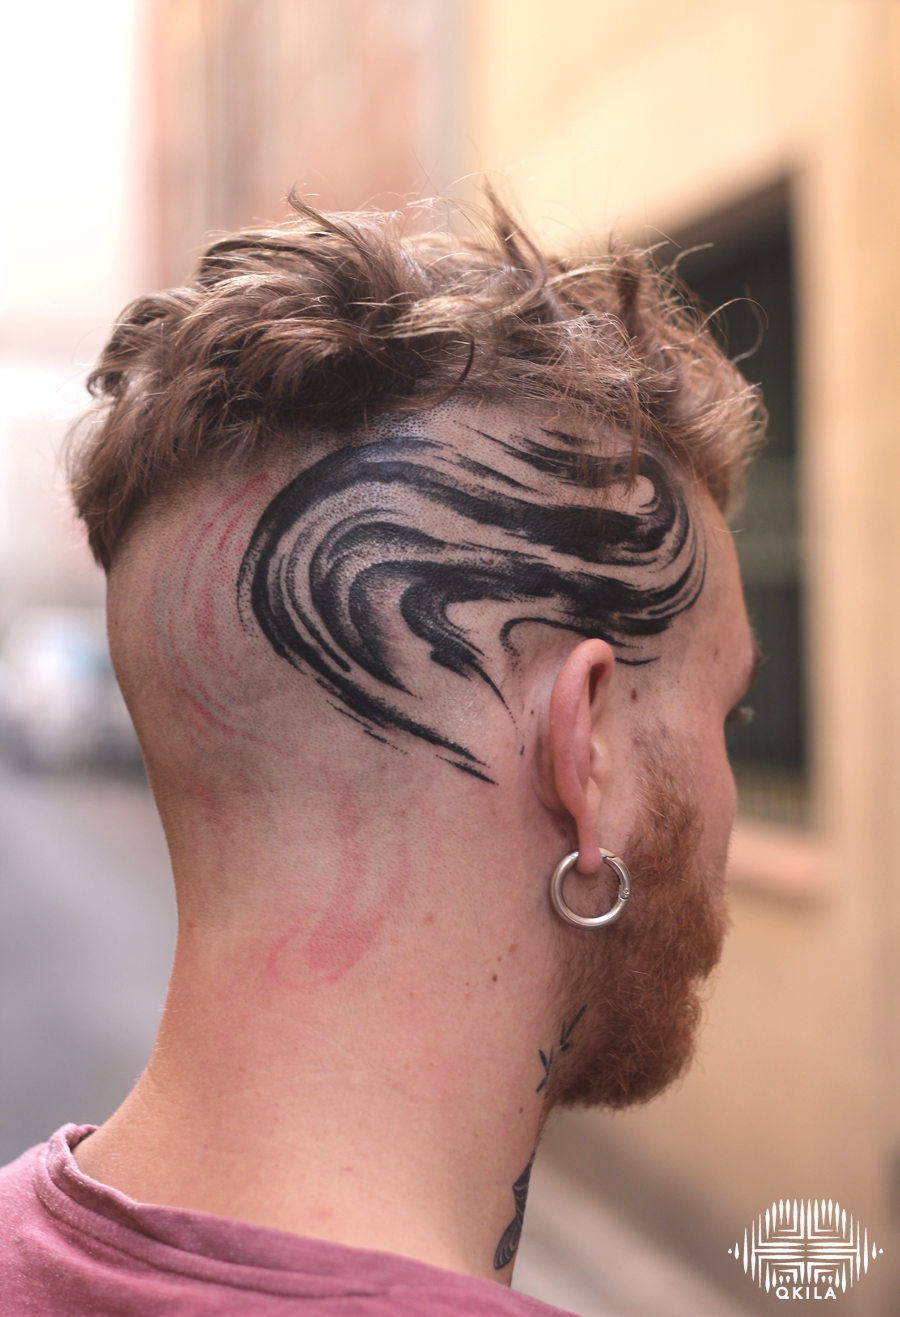 head,oster ,body custom,black,patterns tattoo,op art, sleeves tattoo, dotwork tattoo, qkila,geometric tattoo, ethnique tattoo, les tatoués anonymes, nimes